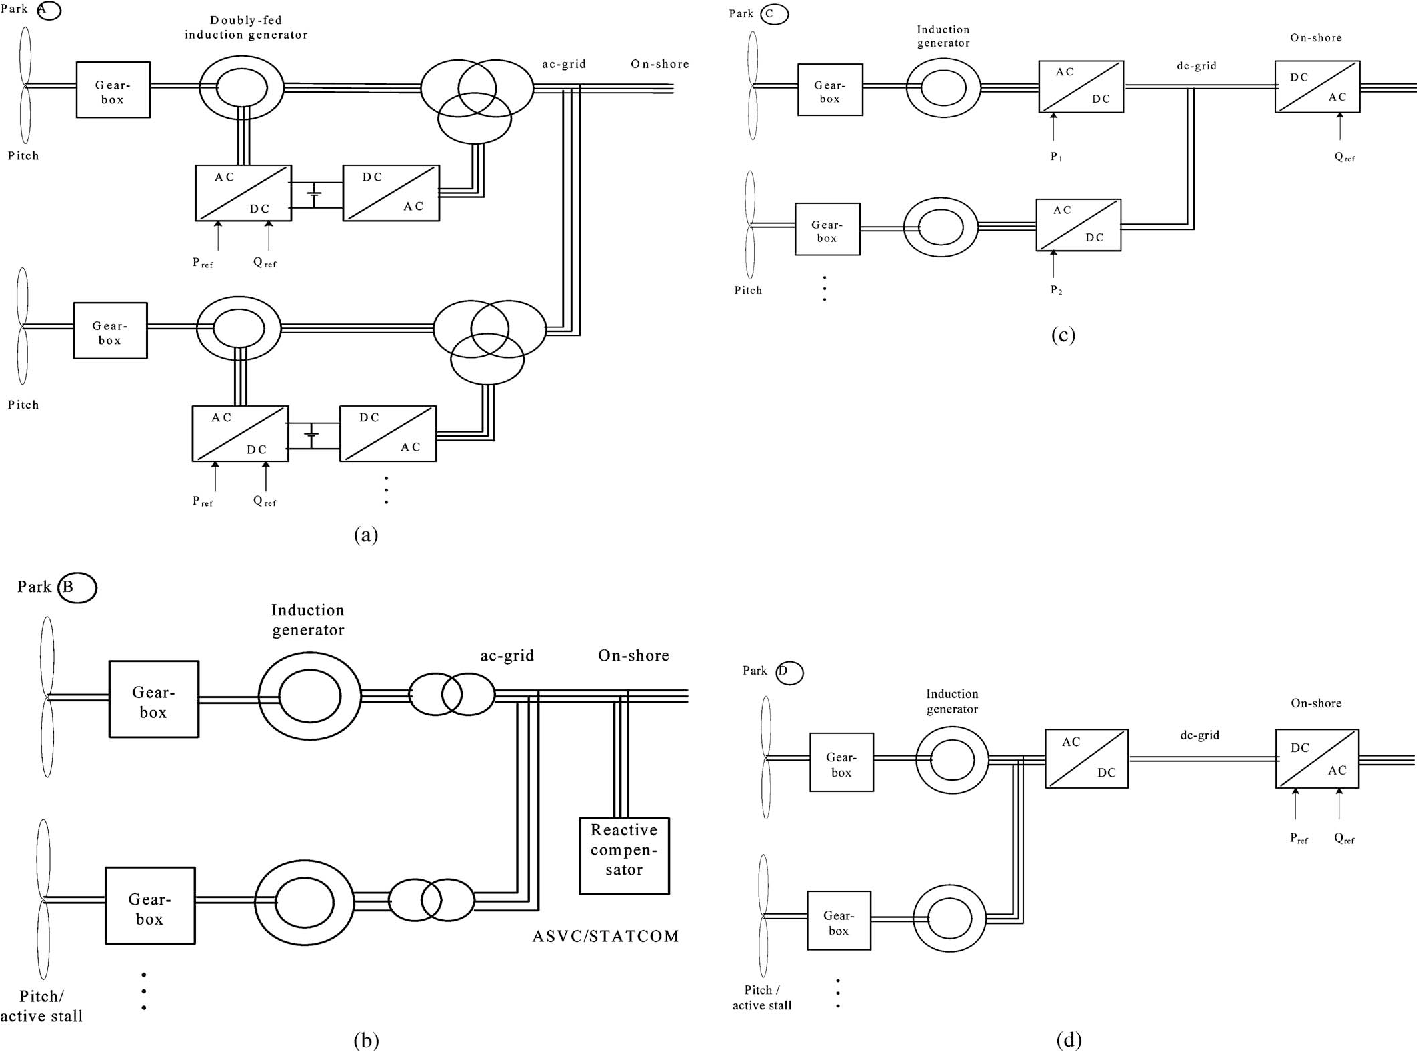 A Review Of The State Art Power Electronics For Wind Figure 45 Shortcircuit Characteristics Generators Turbines Semantic Scholar